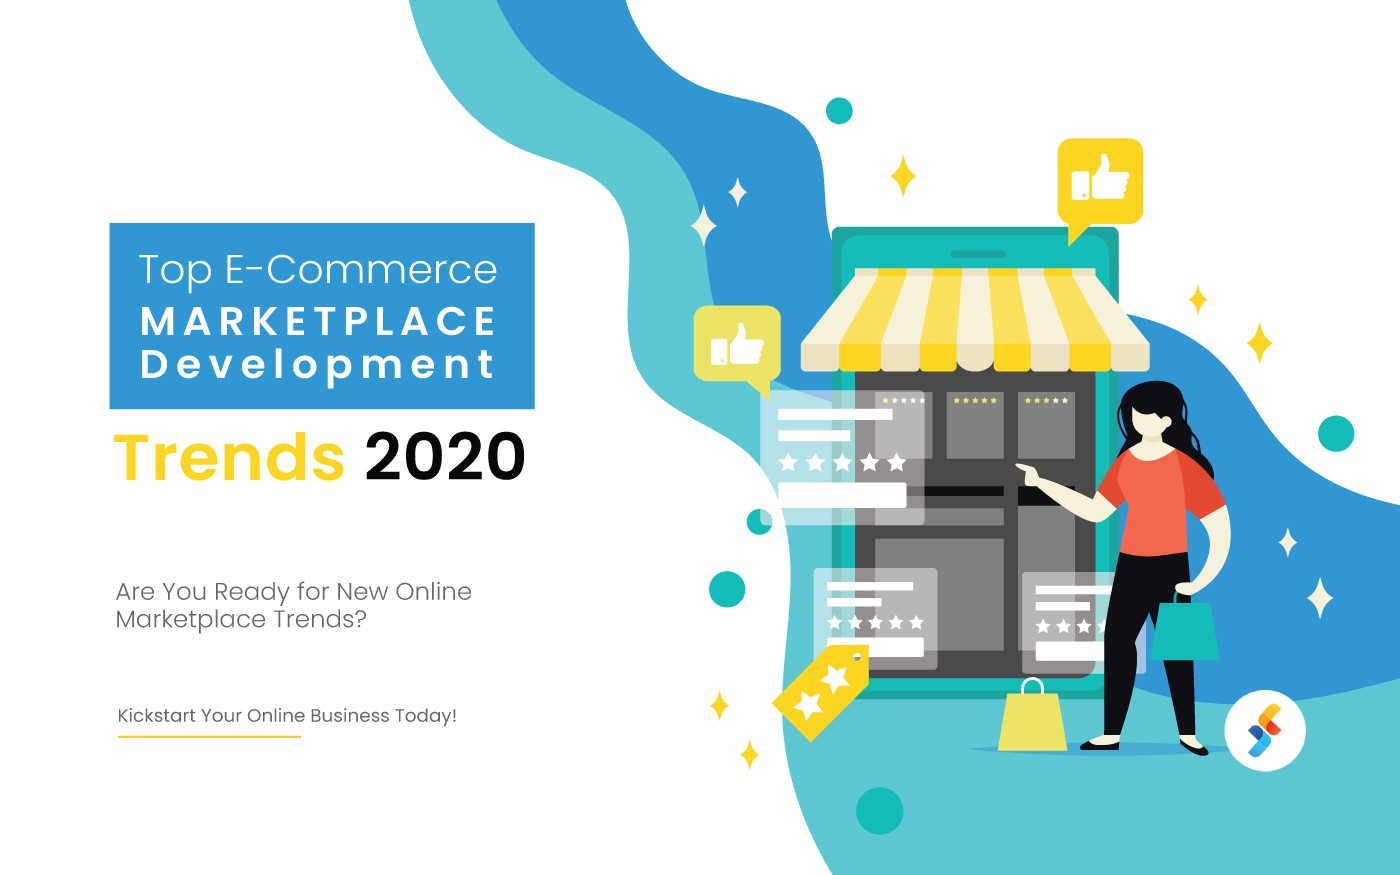 Successful Marketplace Trends to Watch Out For 2020